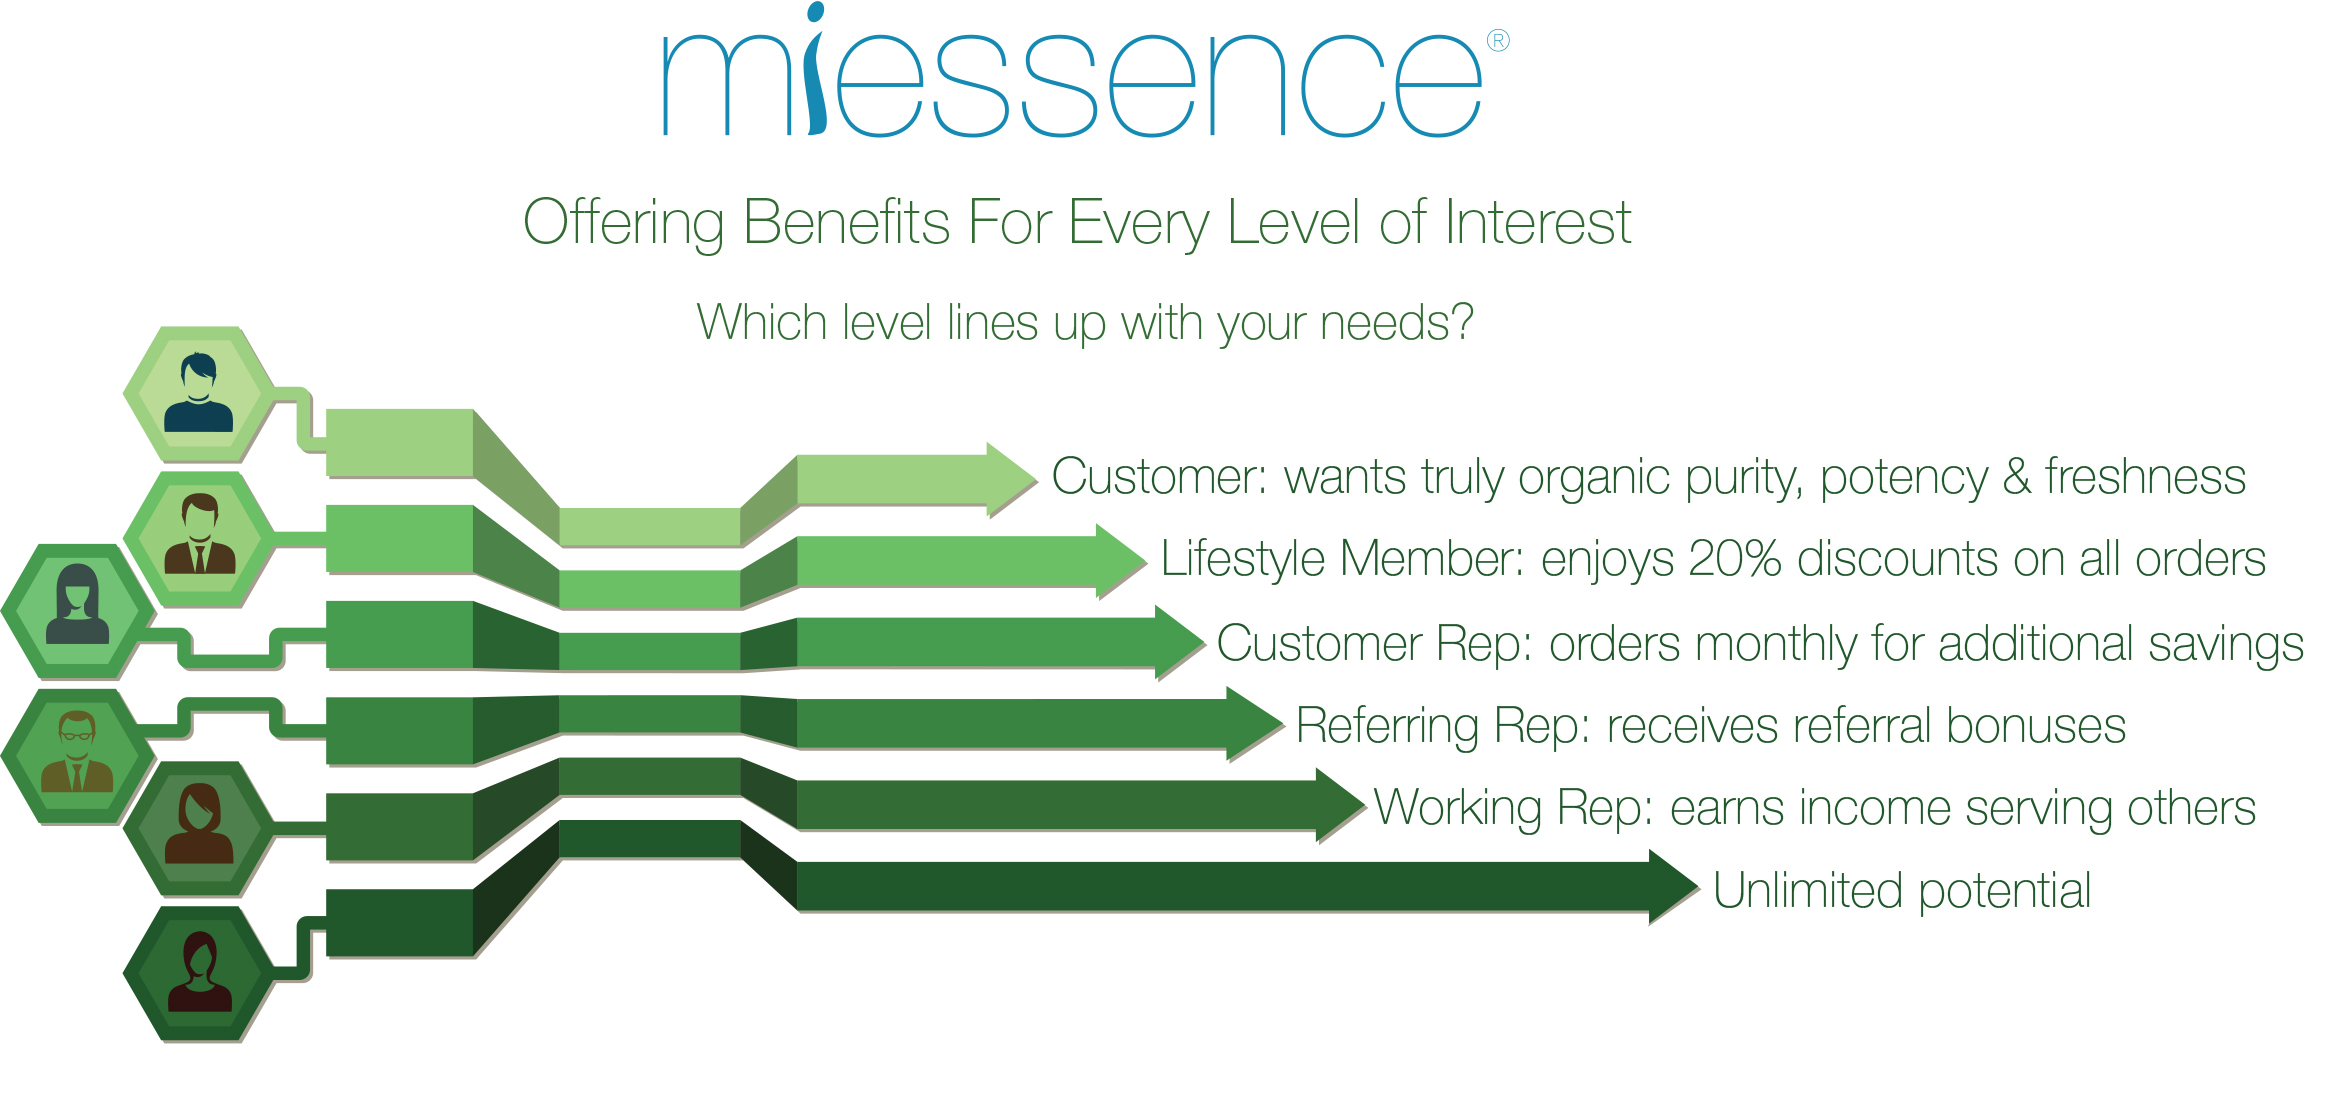 Organic Glow.com Miessence Levels of Benefits